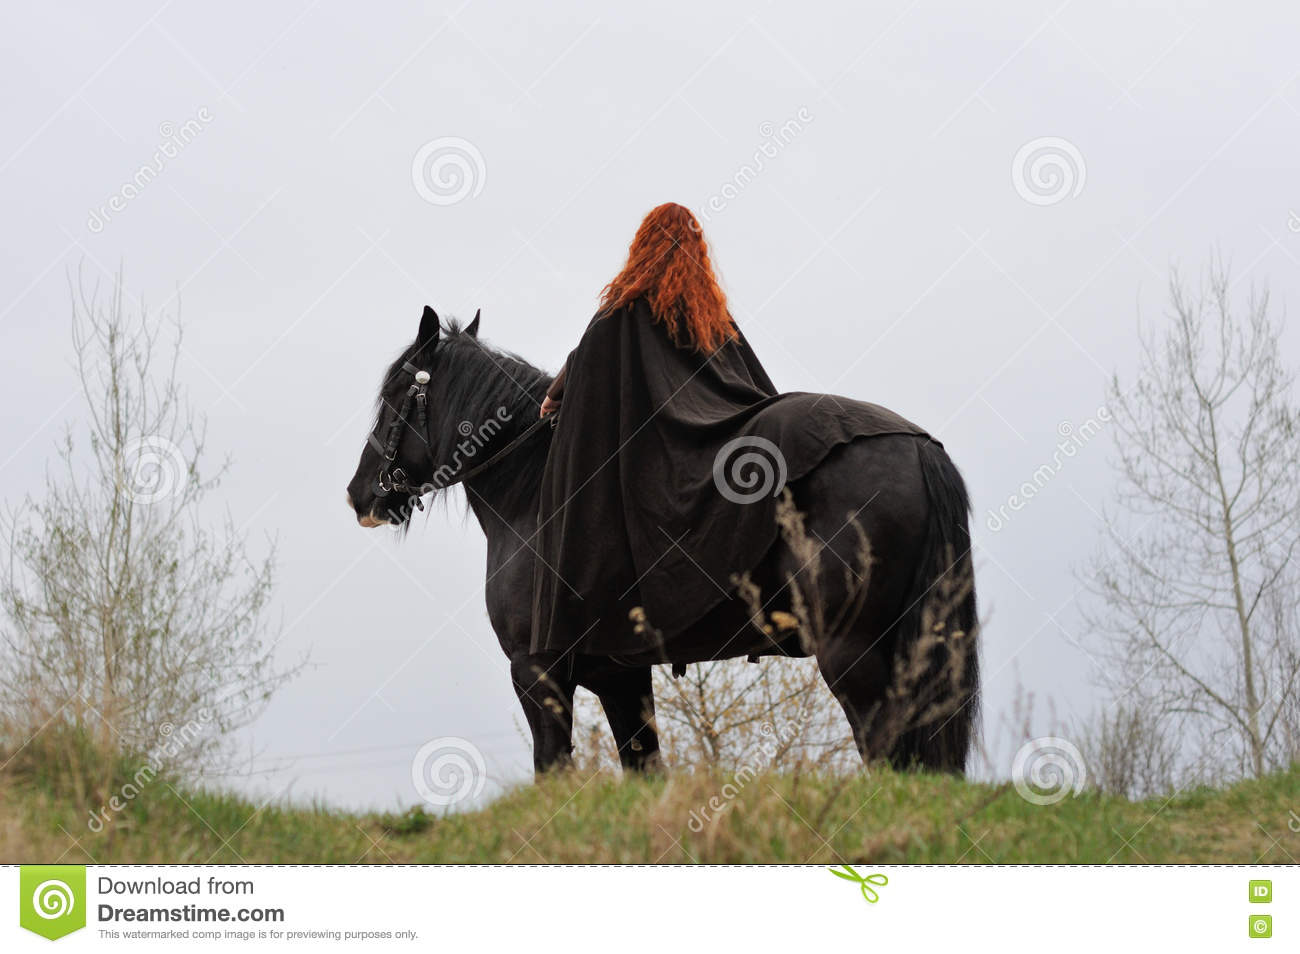 Brave woman with red hair in black cloak on friesian horse